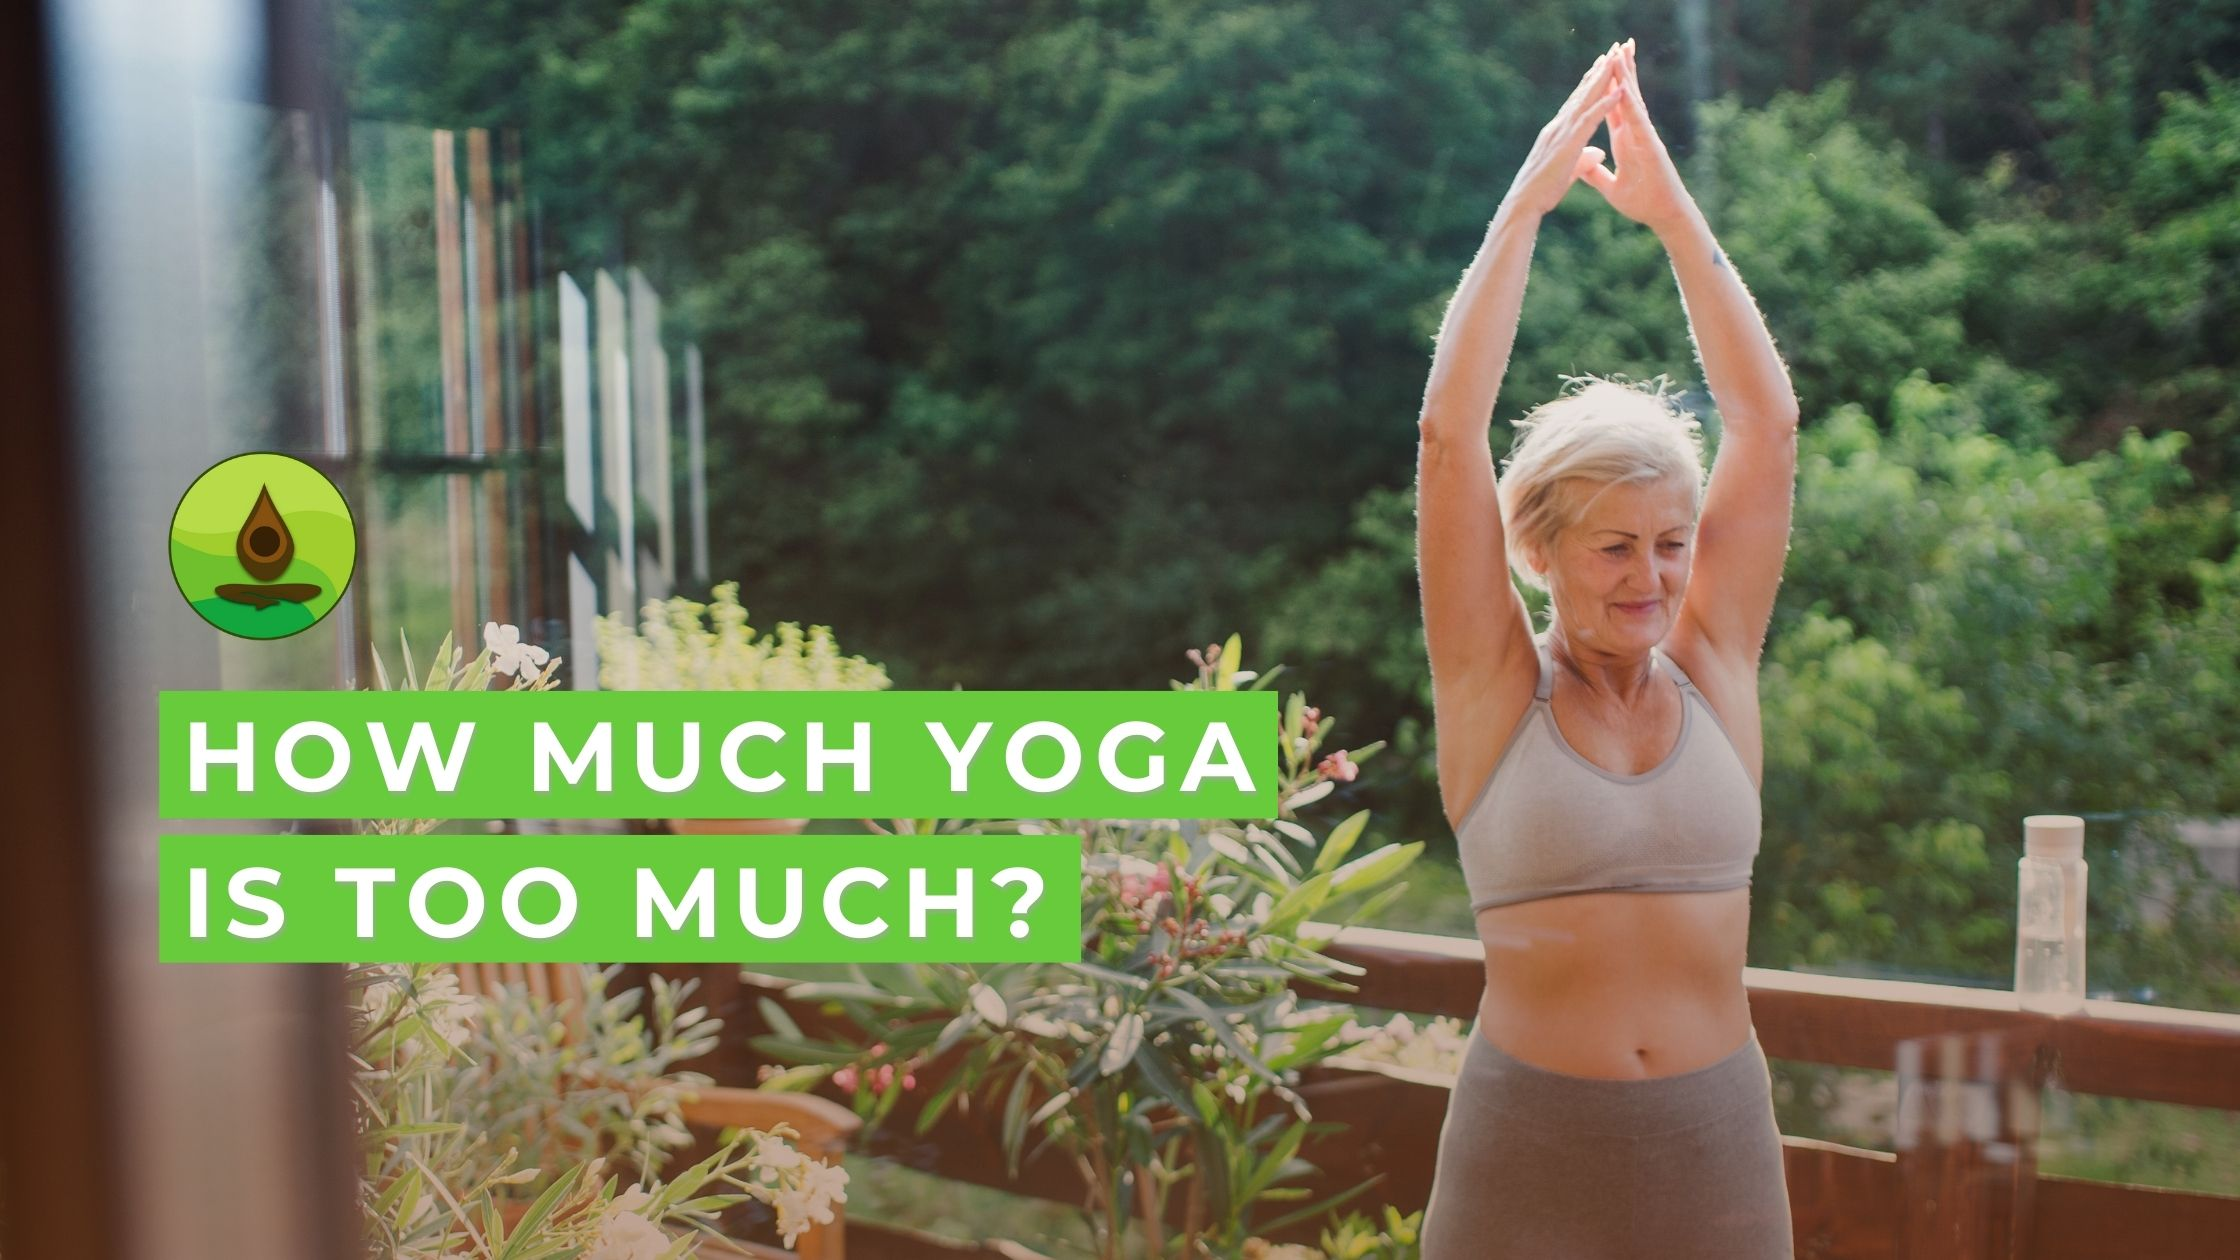 how much yoga is too much women 50 plus